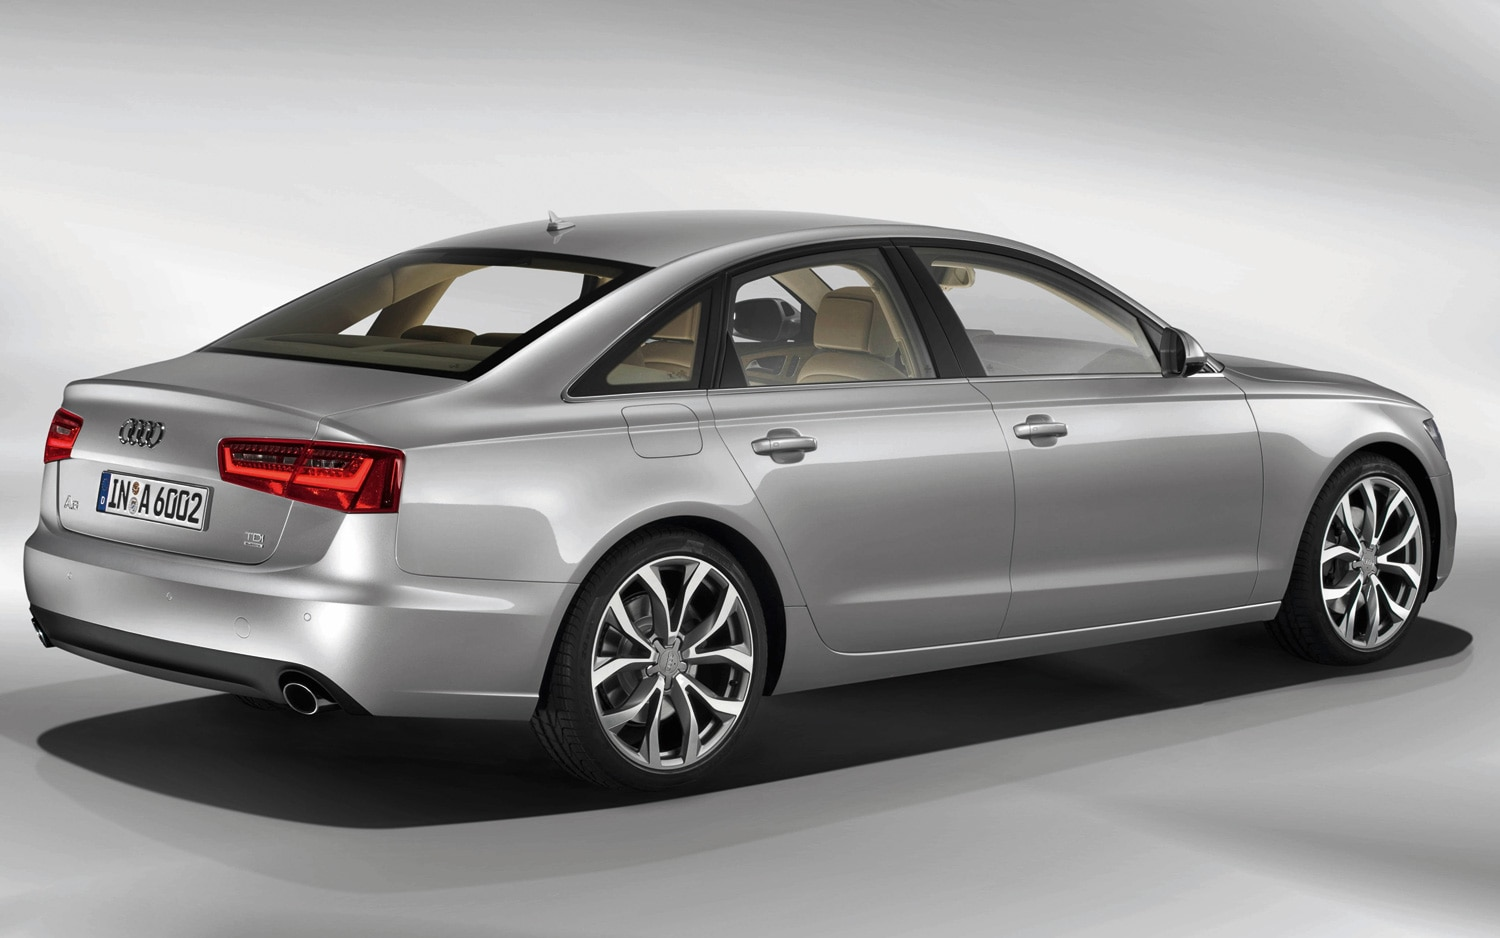 2012 audi a6 3 0 tfsi quattro editors 39 notebook. Black Bedroom Furniture Sets. Home Design Ideas